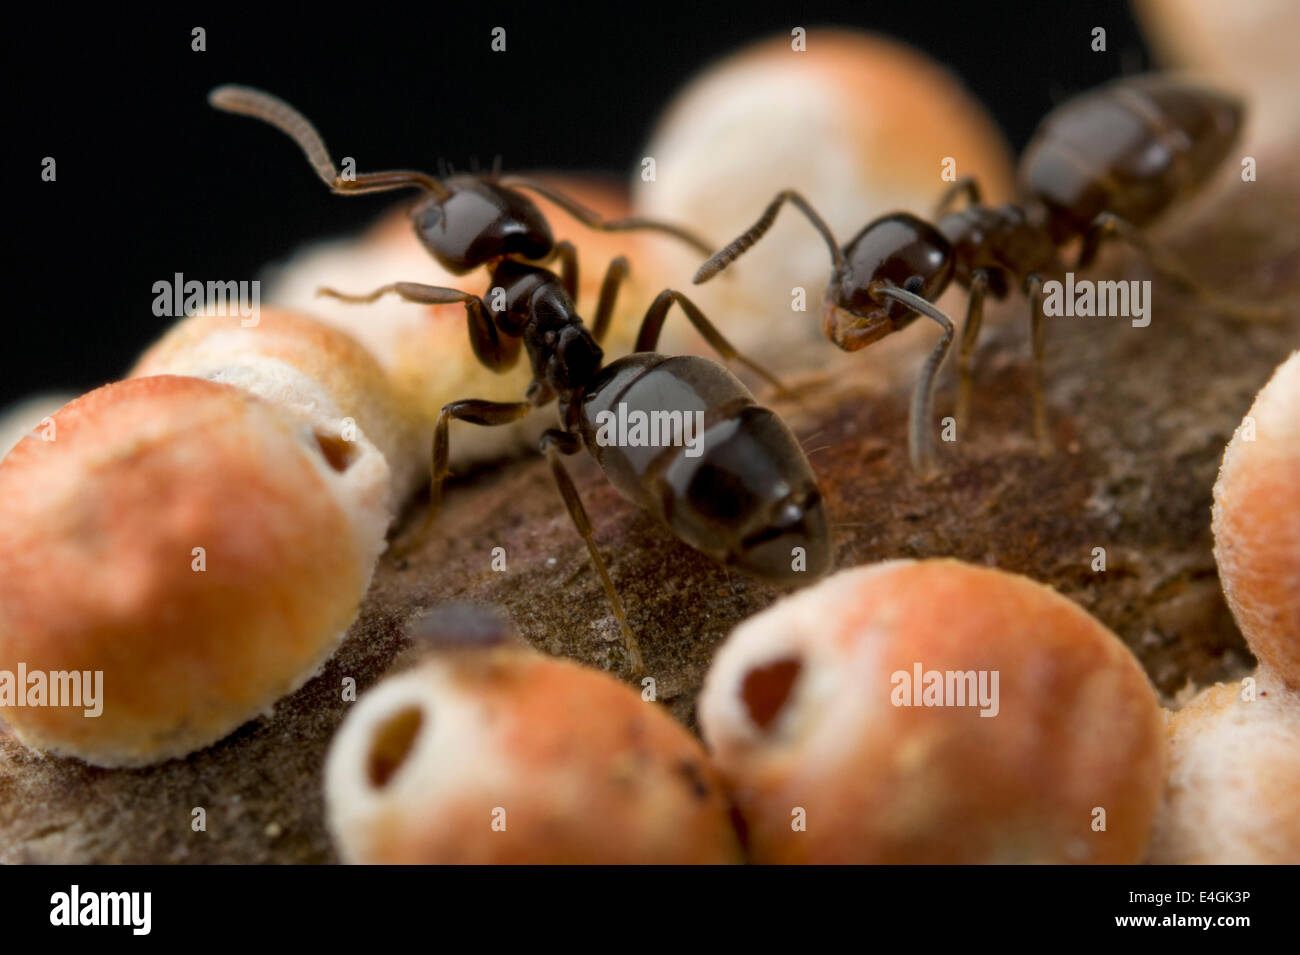 Gumtree scale and attendant ants - Stock Image